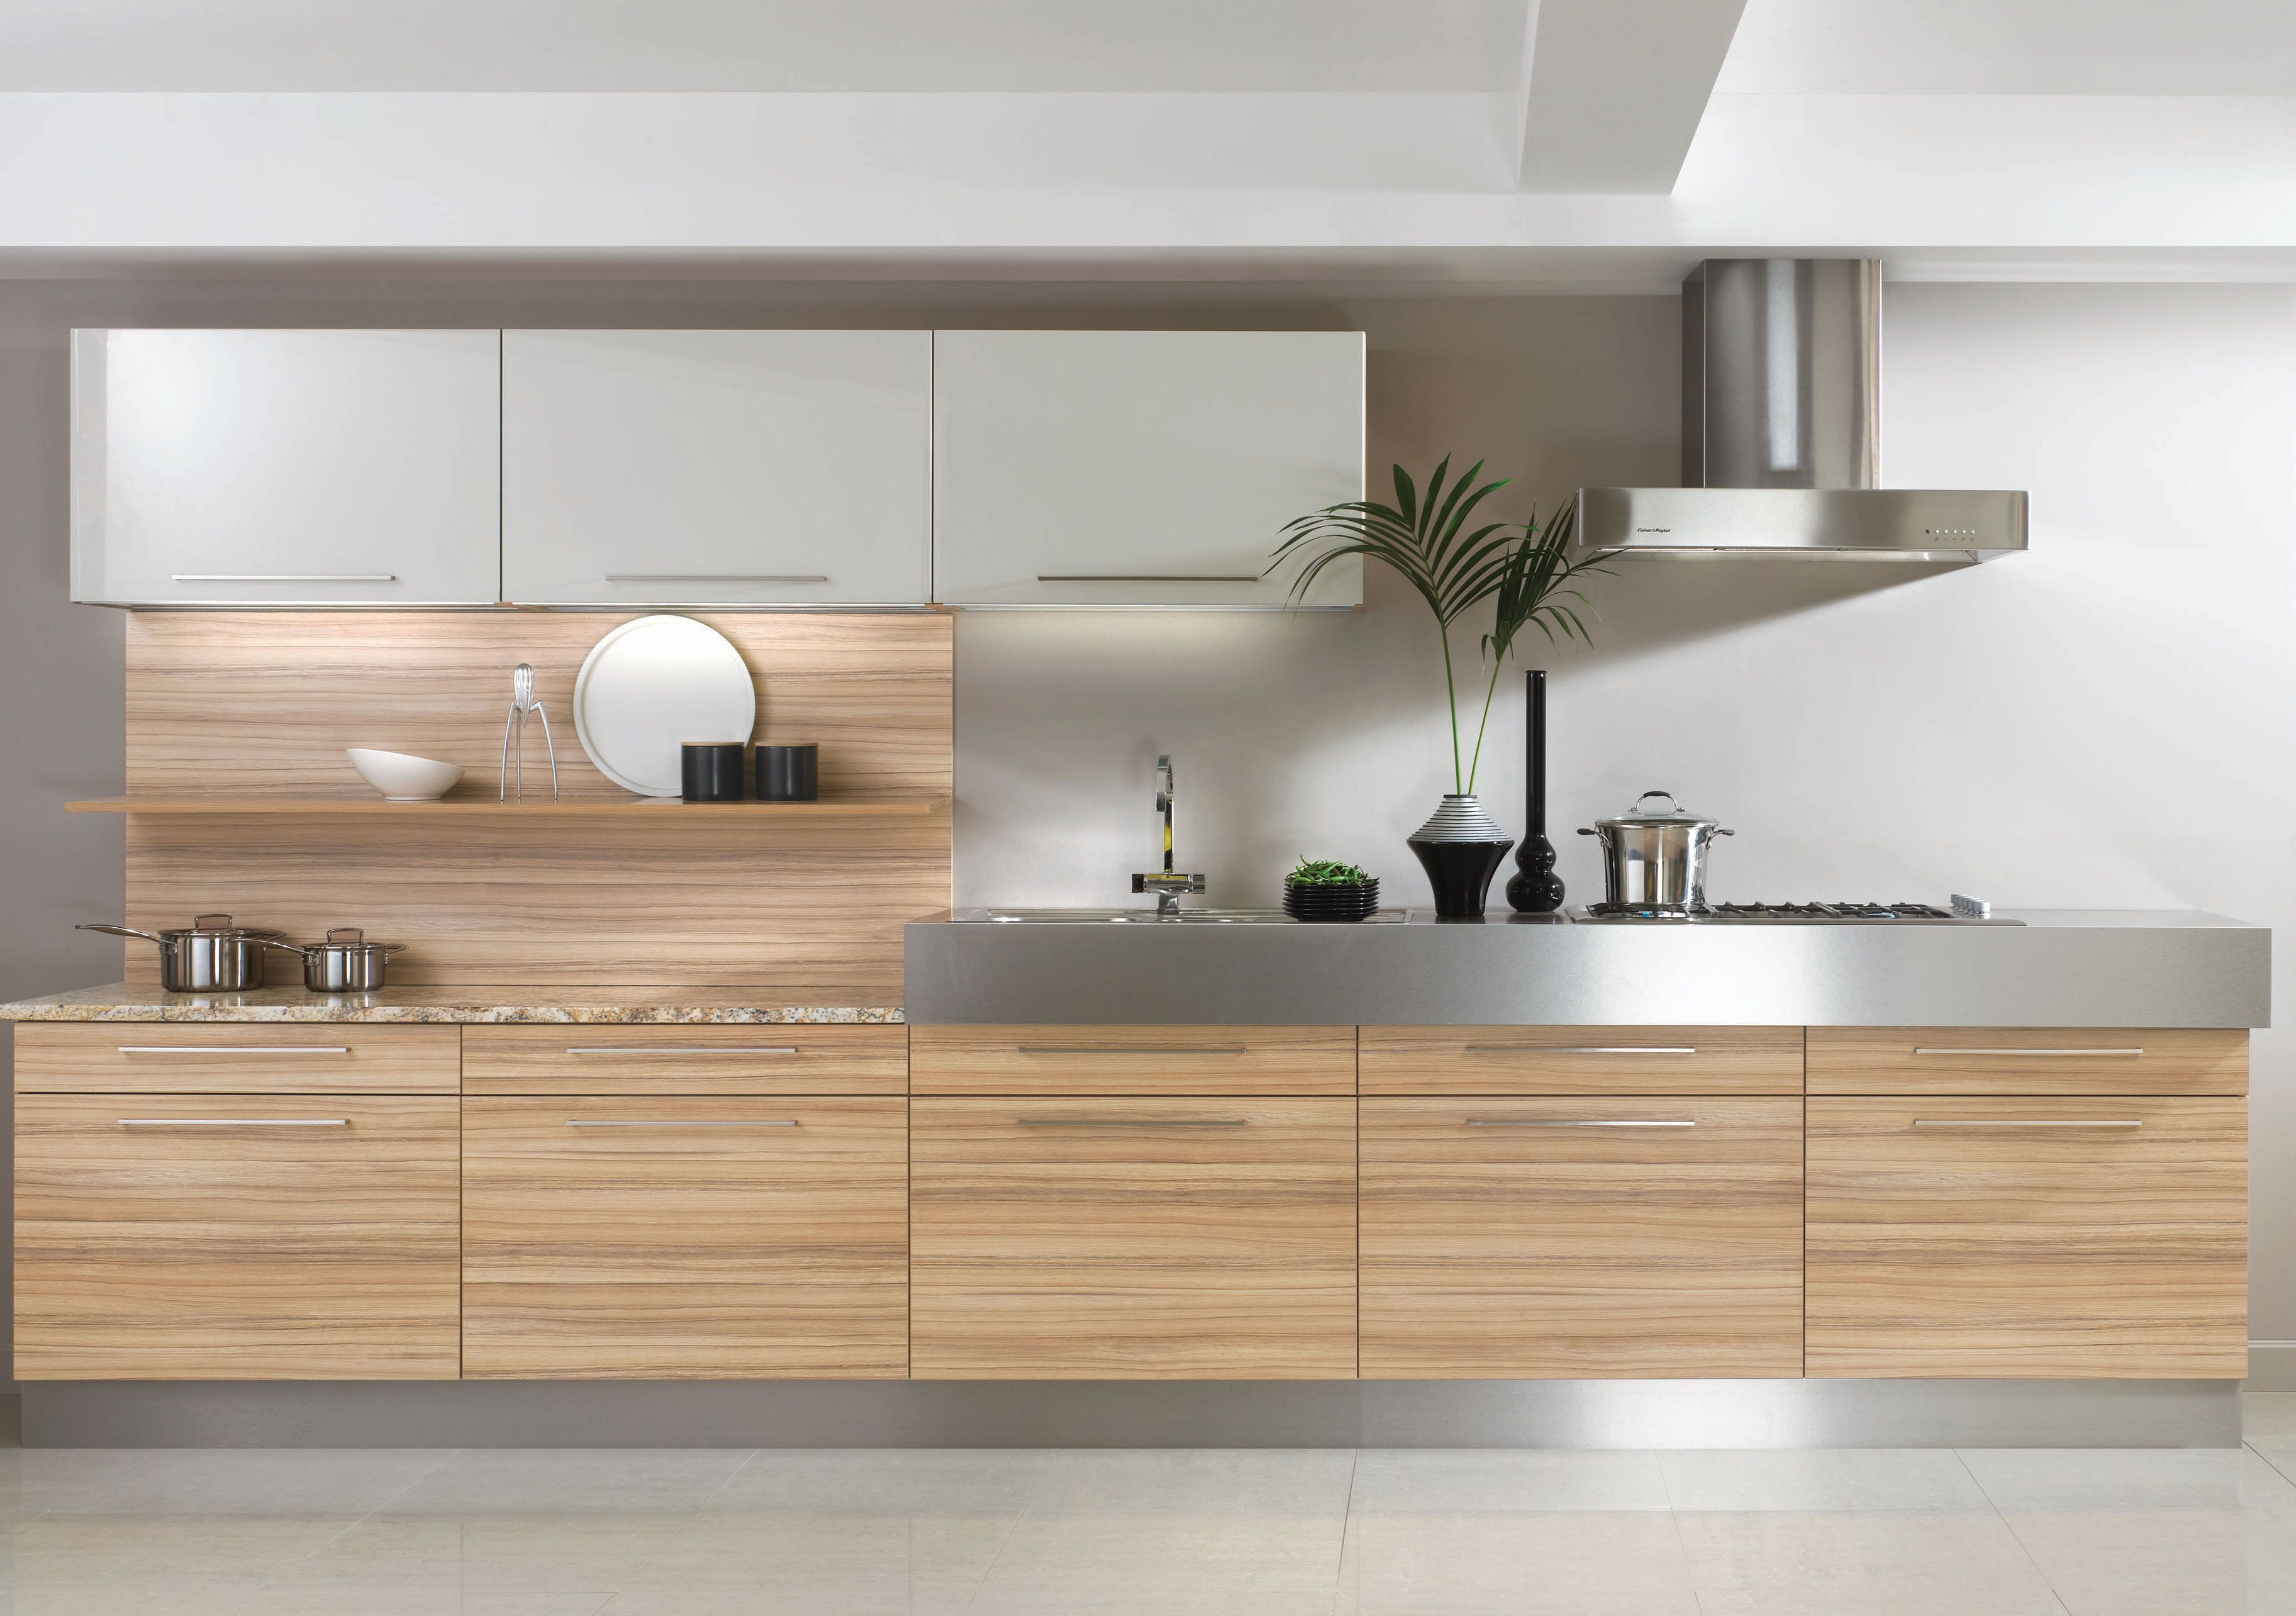 Coco Bolo kitchen units bined with stainless steel worktops for a modern but very practical kitchen design